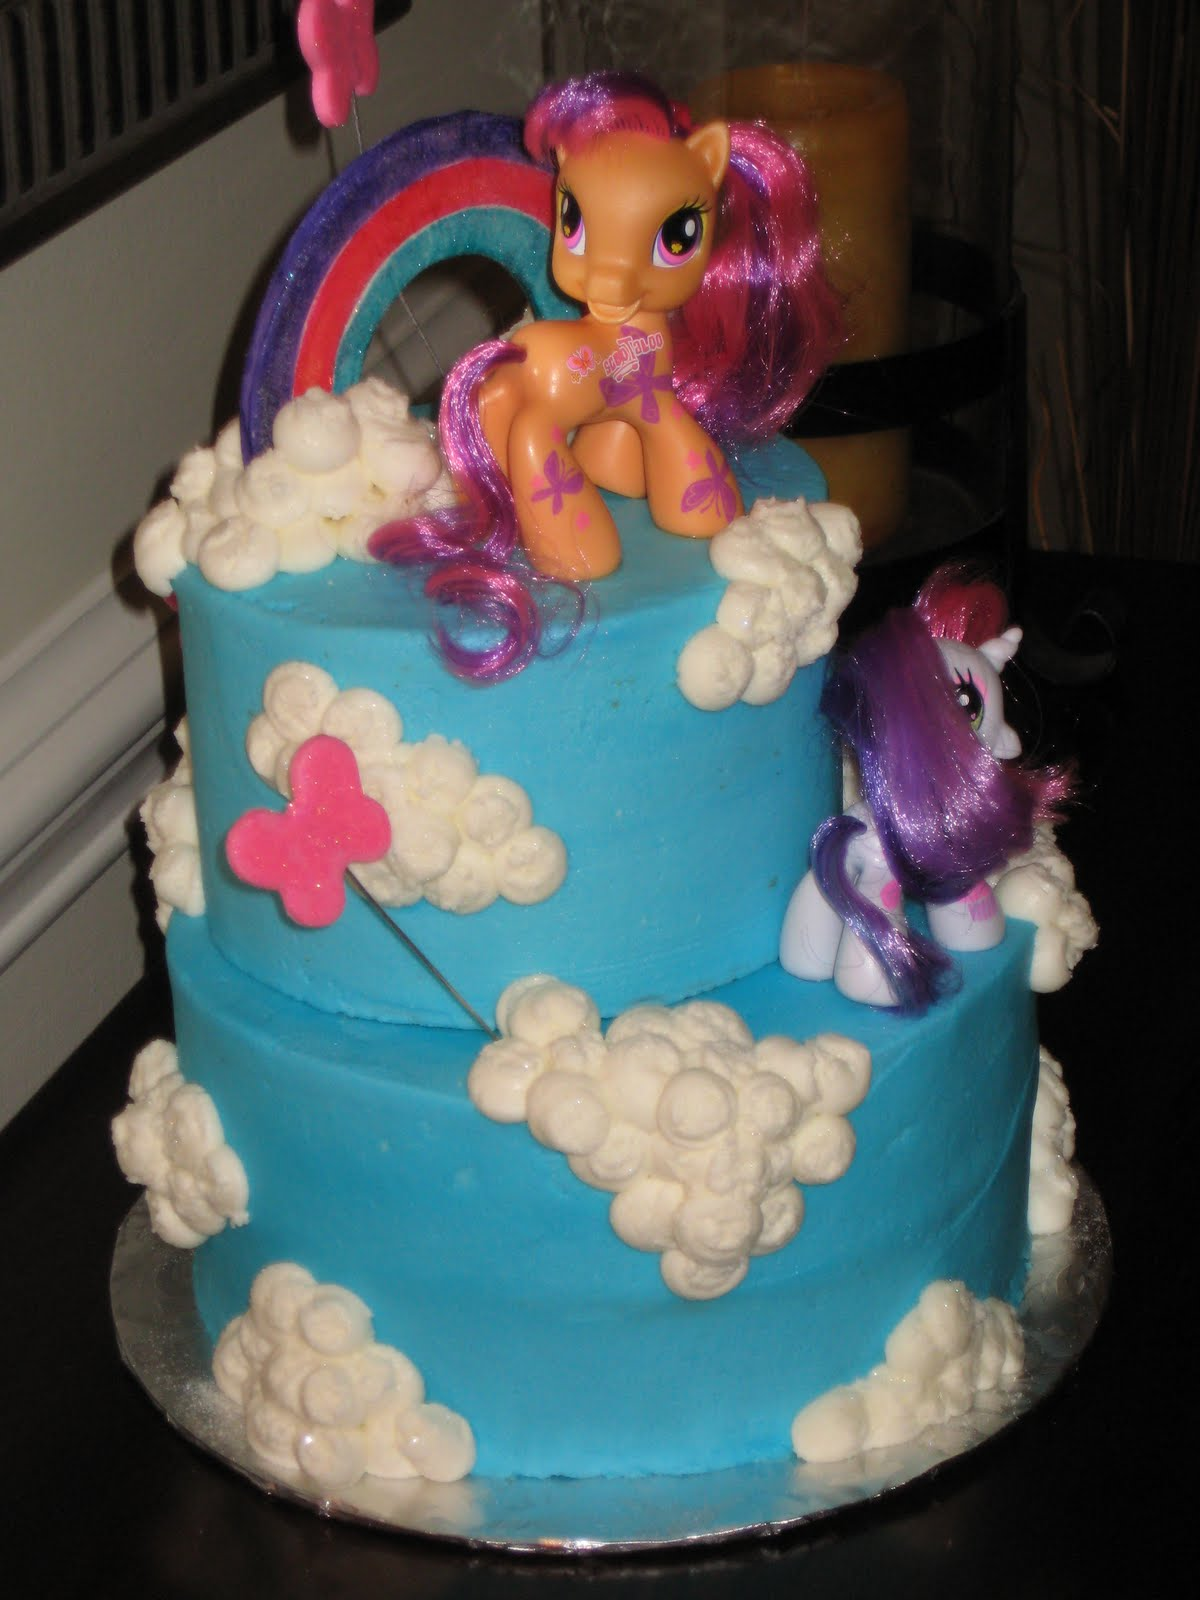 My Little Pony Birthday Cake Cake Ideas and Designs